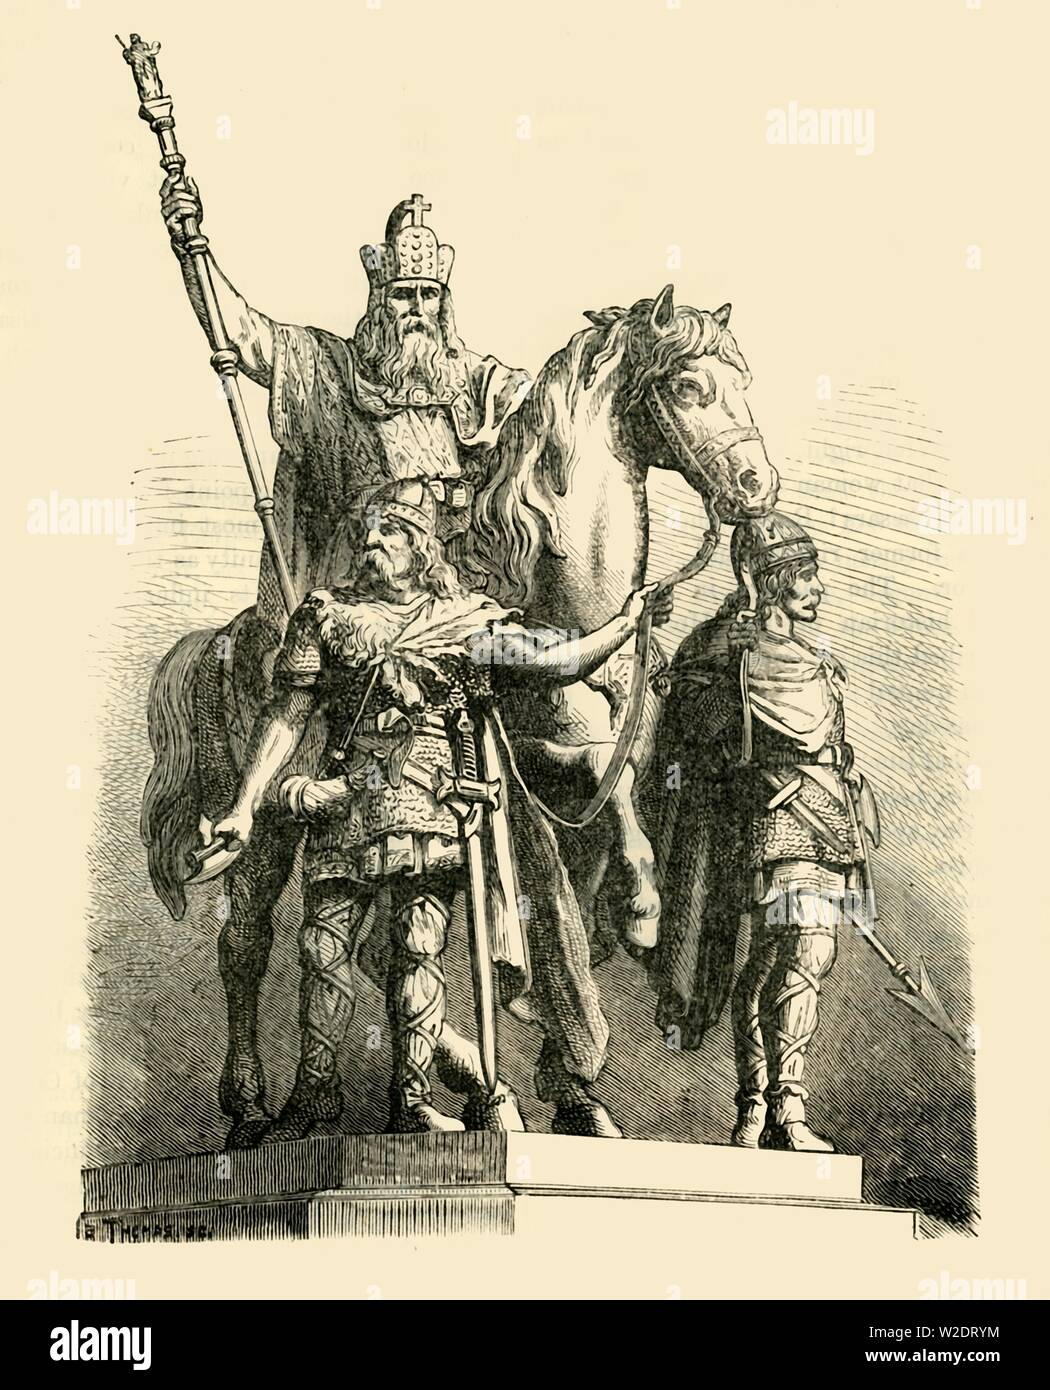 """'Equestrian Statue of Charlemagne, Paris', 1890. Charlemagne et ses Leudes in the 4th arrondissement of Paris, is a bronze statue by Charles Rochet and Louis Rochet, of Charlemagne (742-814) and his vassals Roland and Olivier.  From """"Cassell's Illustrated Universal History, Vol. III - The Middle Ages"""", by Edmund Ollier. [Cassell and Company, Limited, London, Paris and Melbourne, 1890. ] - Stock Image"""